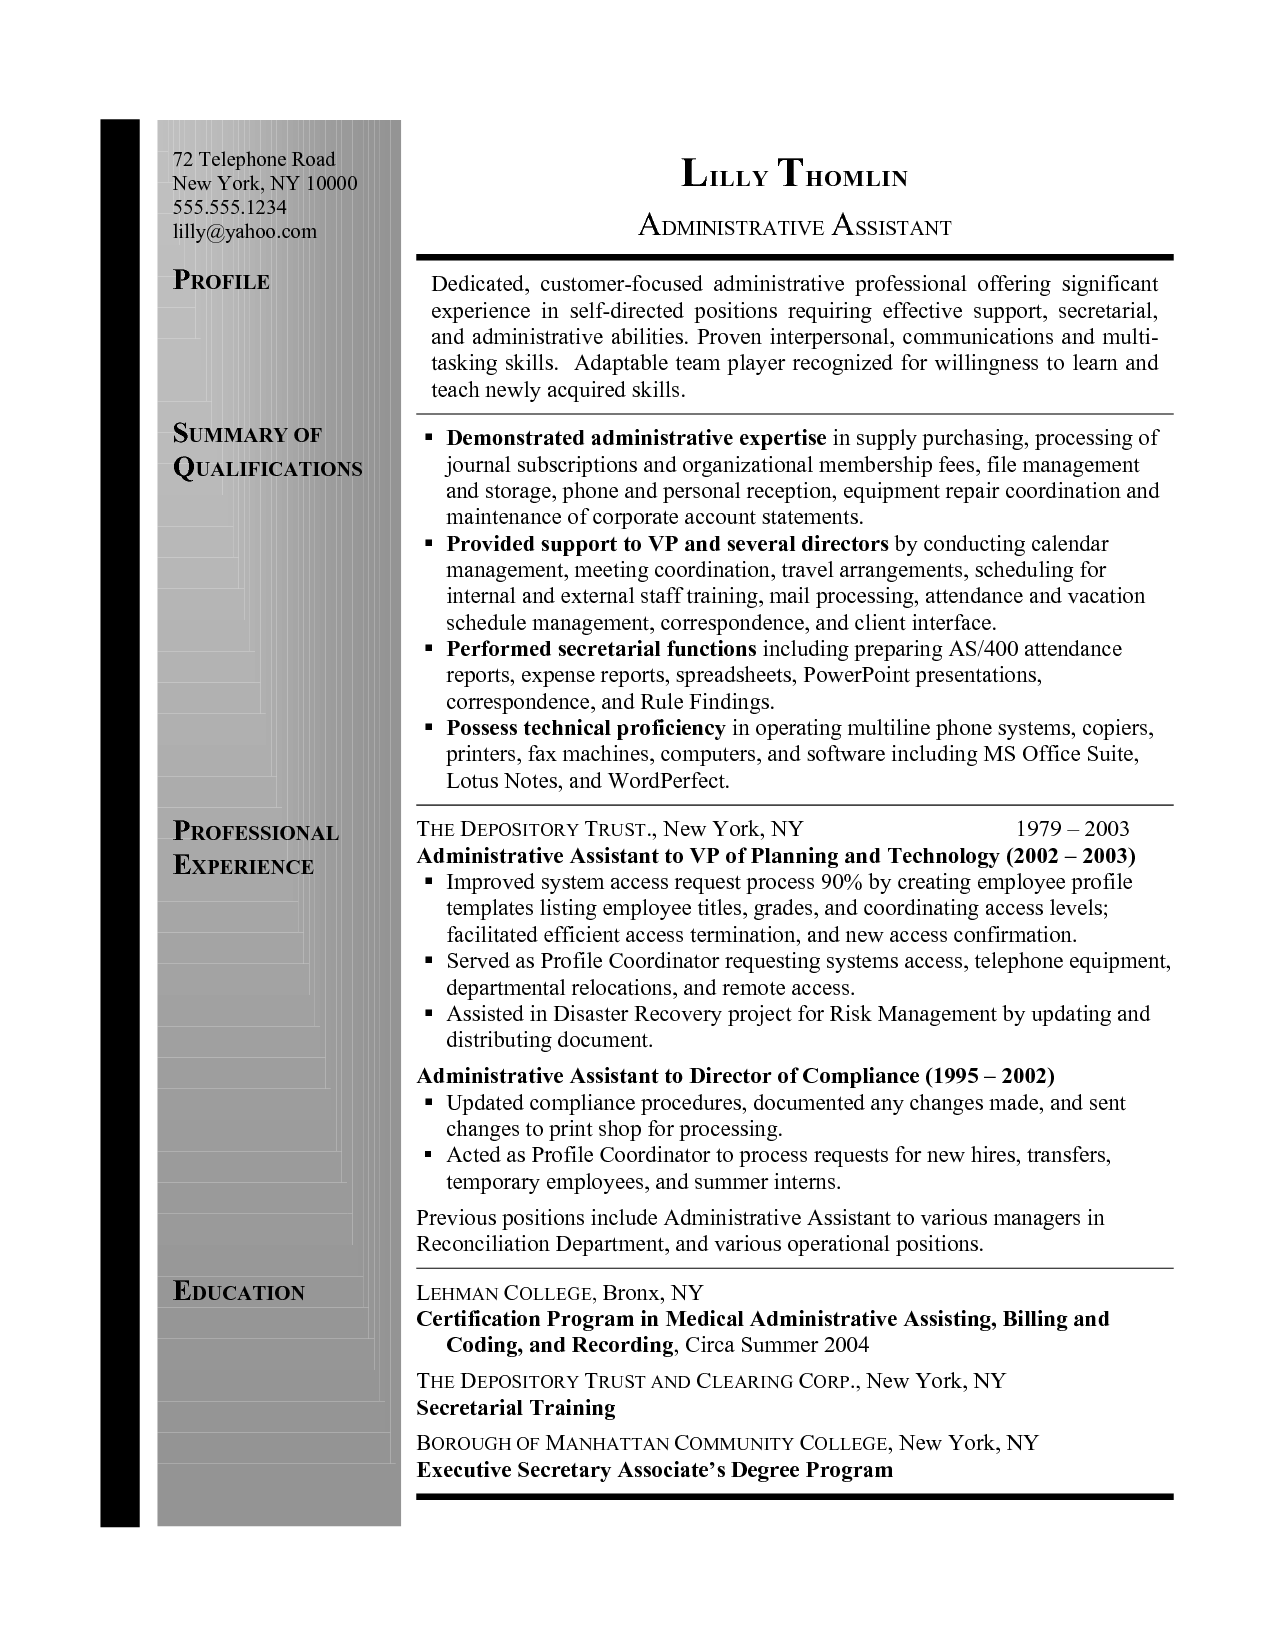 Administrative Assistant Resume Summary Resume Summary Administrative Assistant Administrative